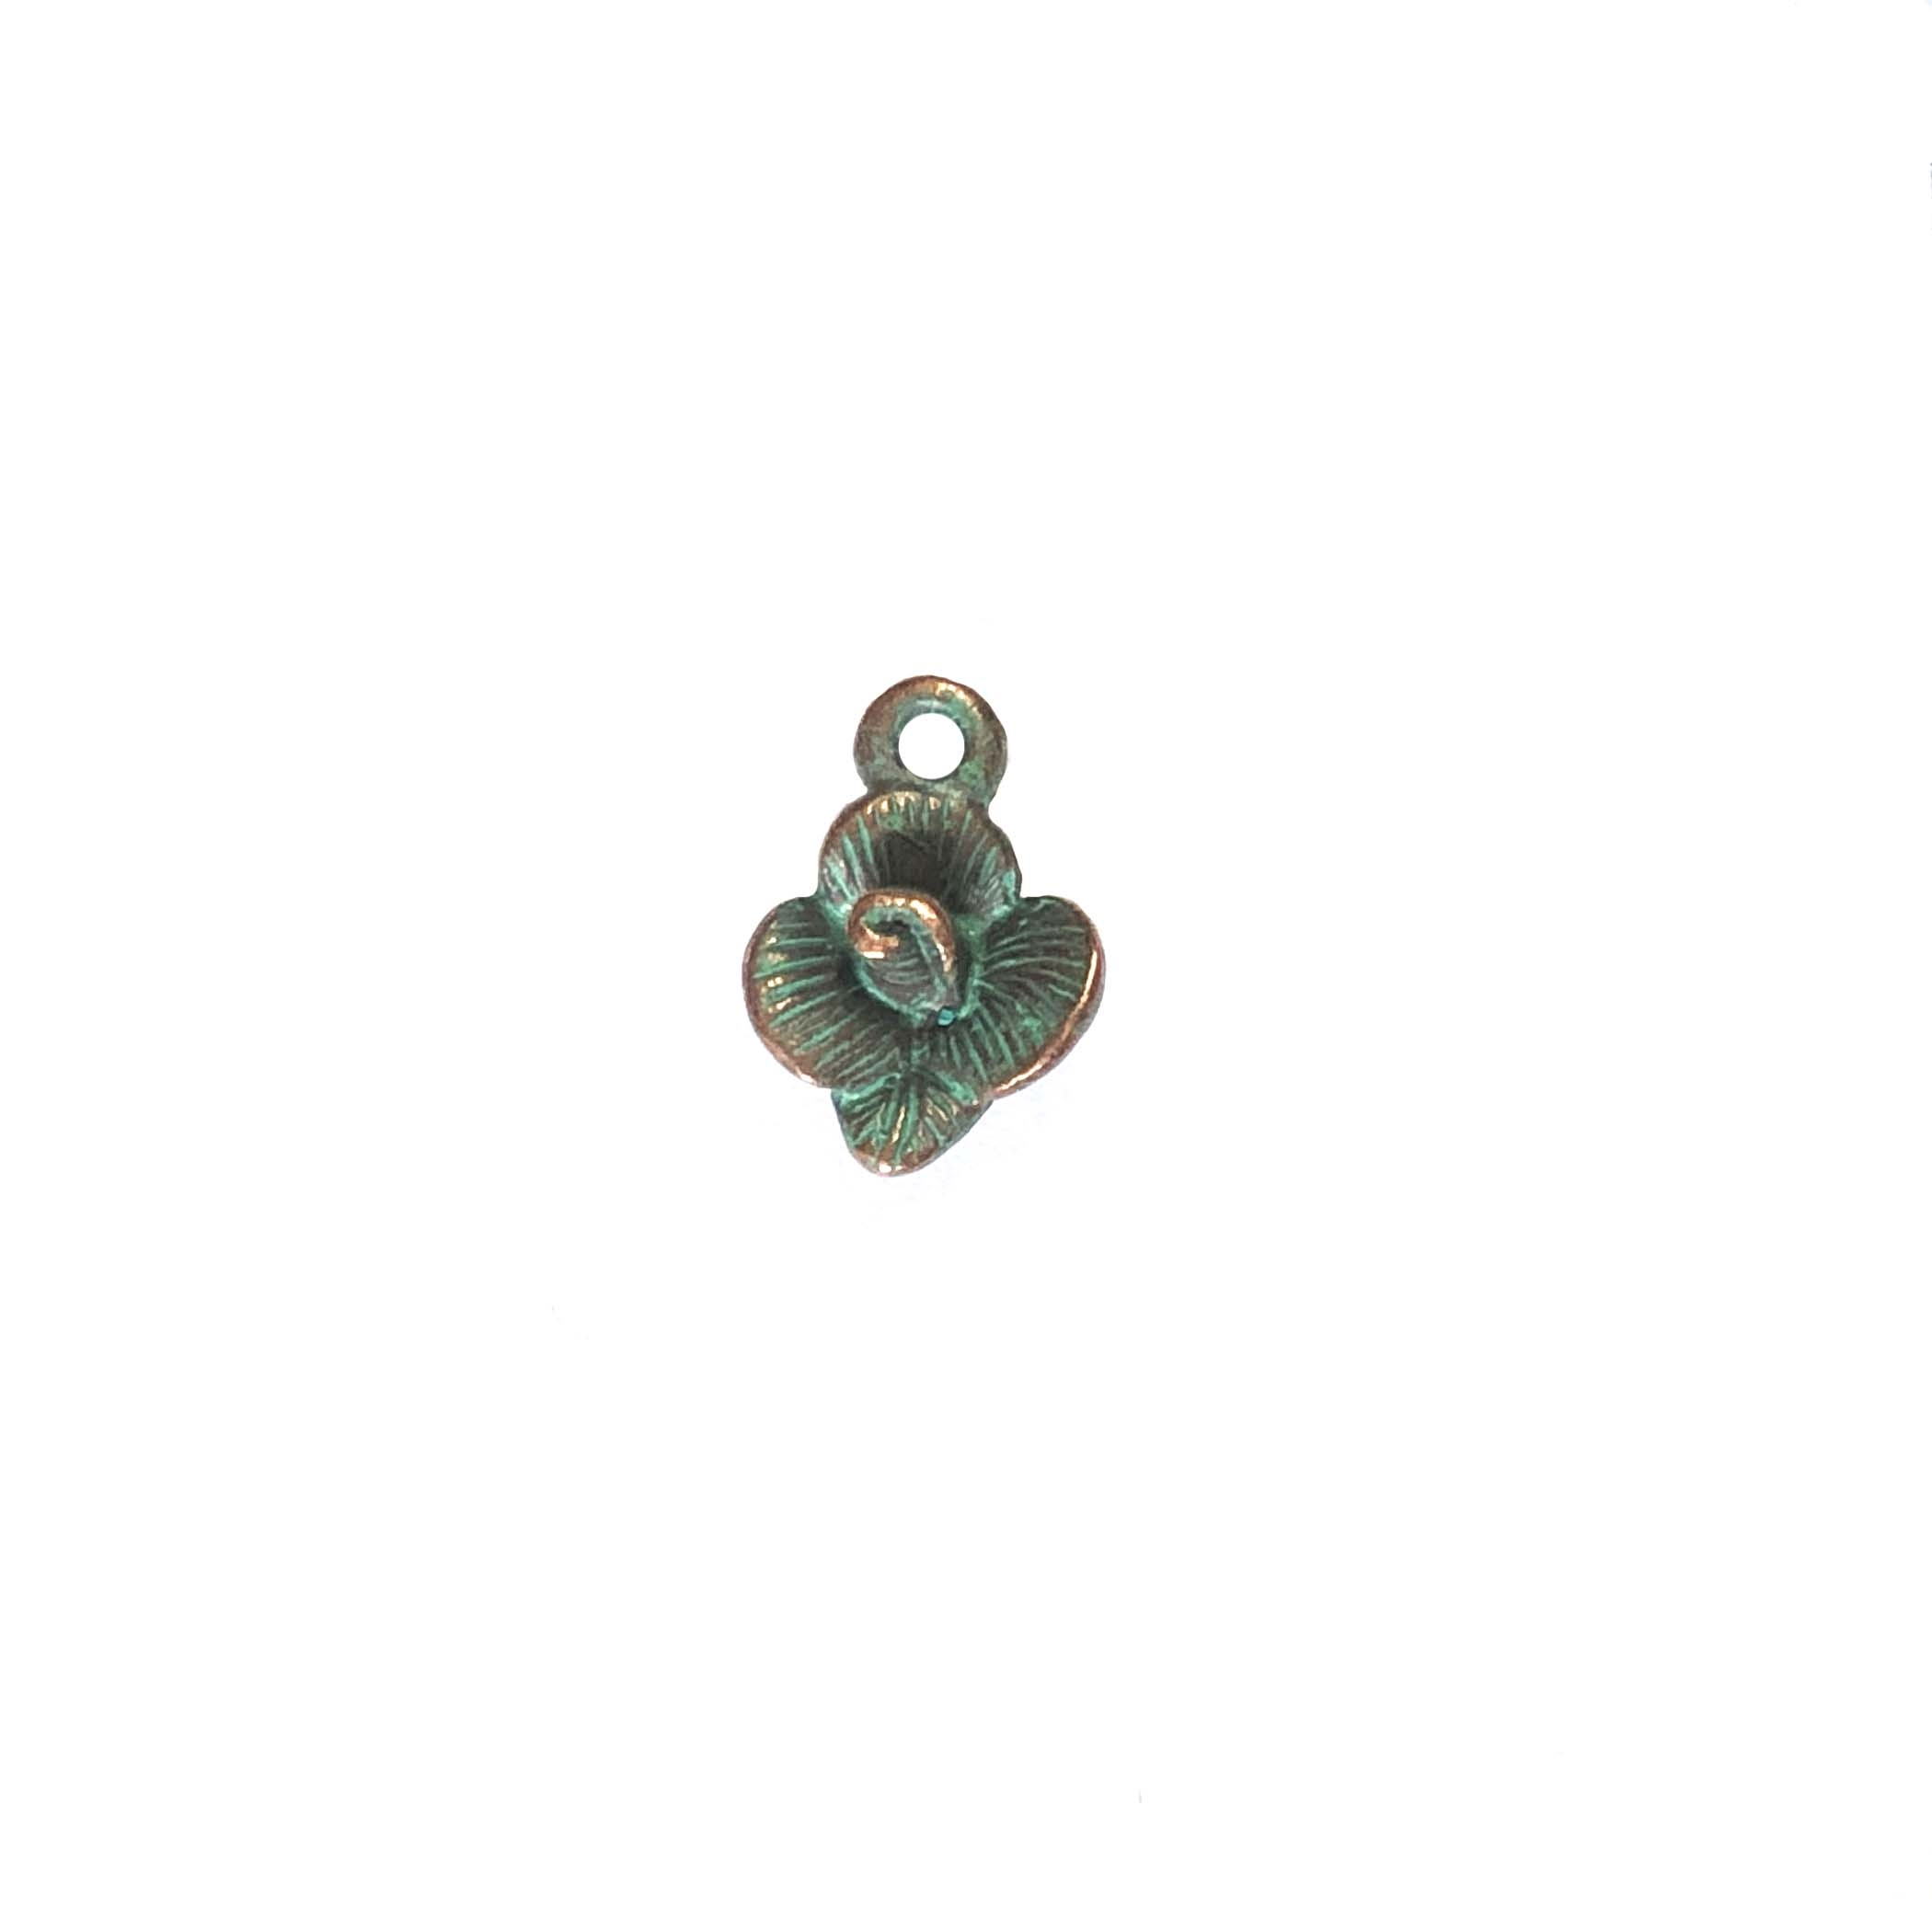 vintage pewter castings, B'sue by 1928, floral charms, bracelet making, weathered copper, nickel free, lead free pewter, us made, designer jewelry, vintage jewelry supplies, green patina, B'sue Boutique, 13x9mm, flower charm, charm, flower,0303